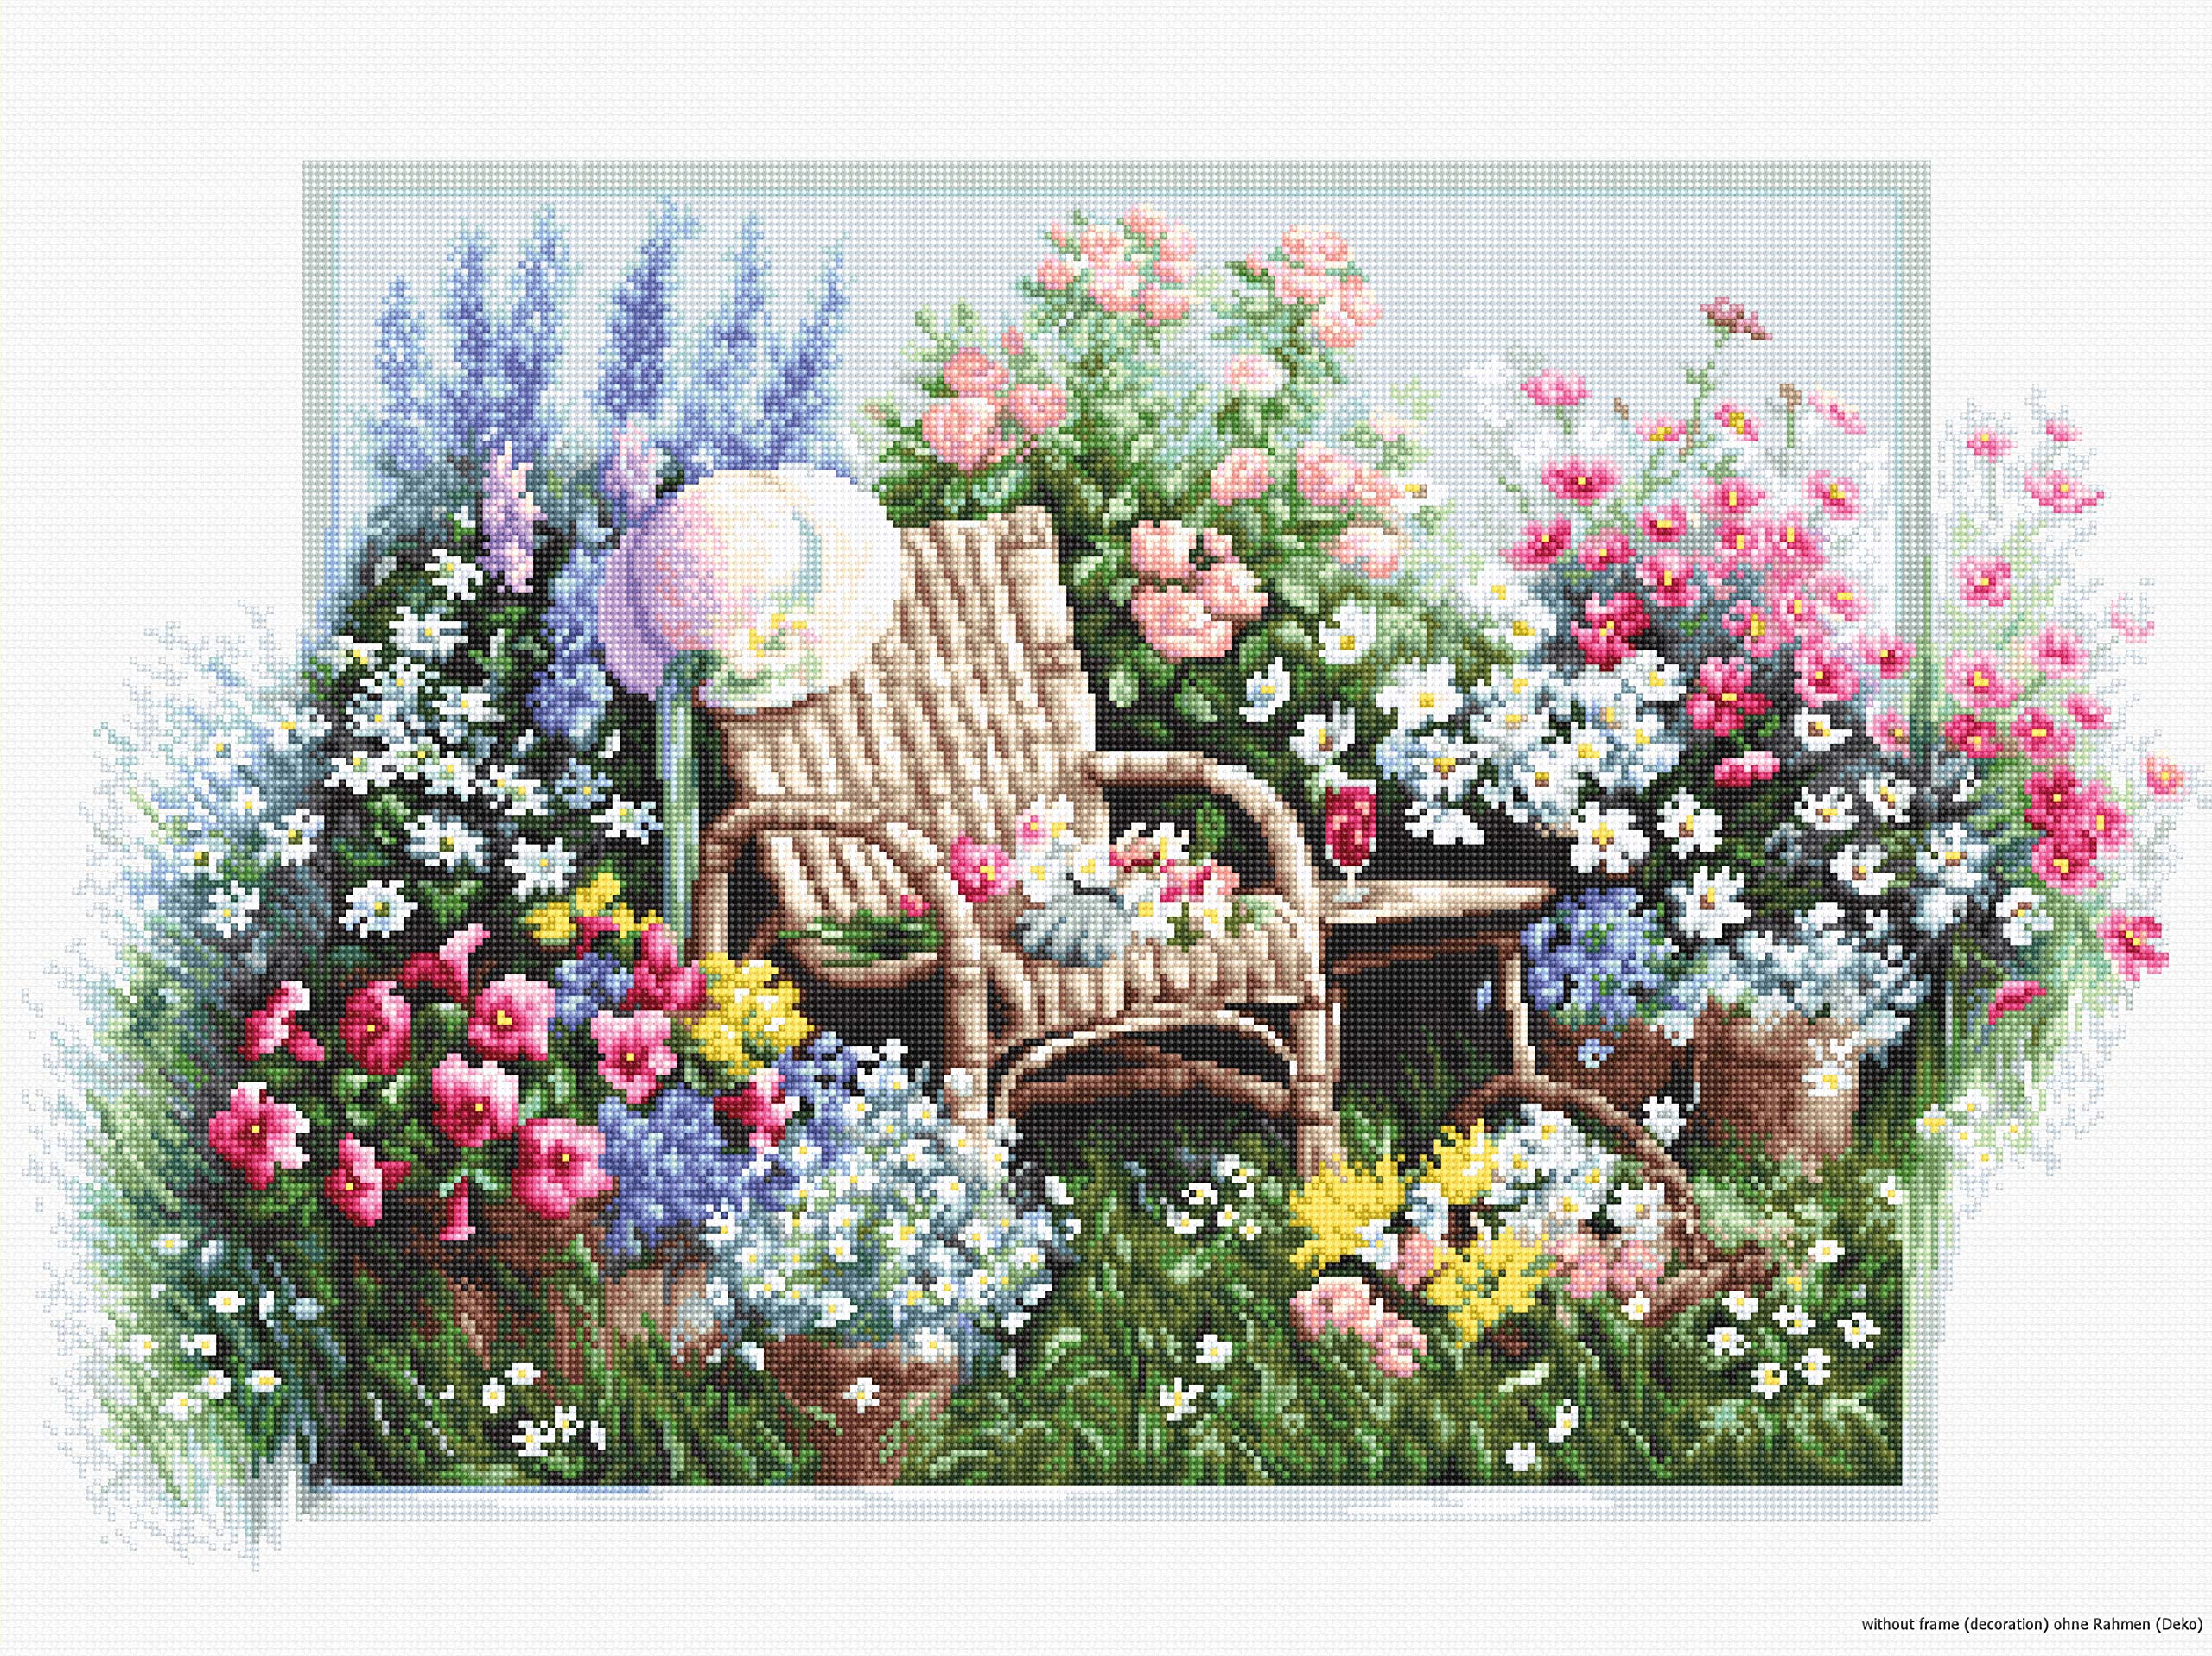 Luca-S Cross Stitch Kit, Cotton, Multicoloured, 43x28cm